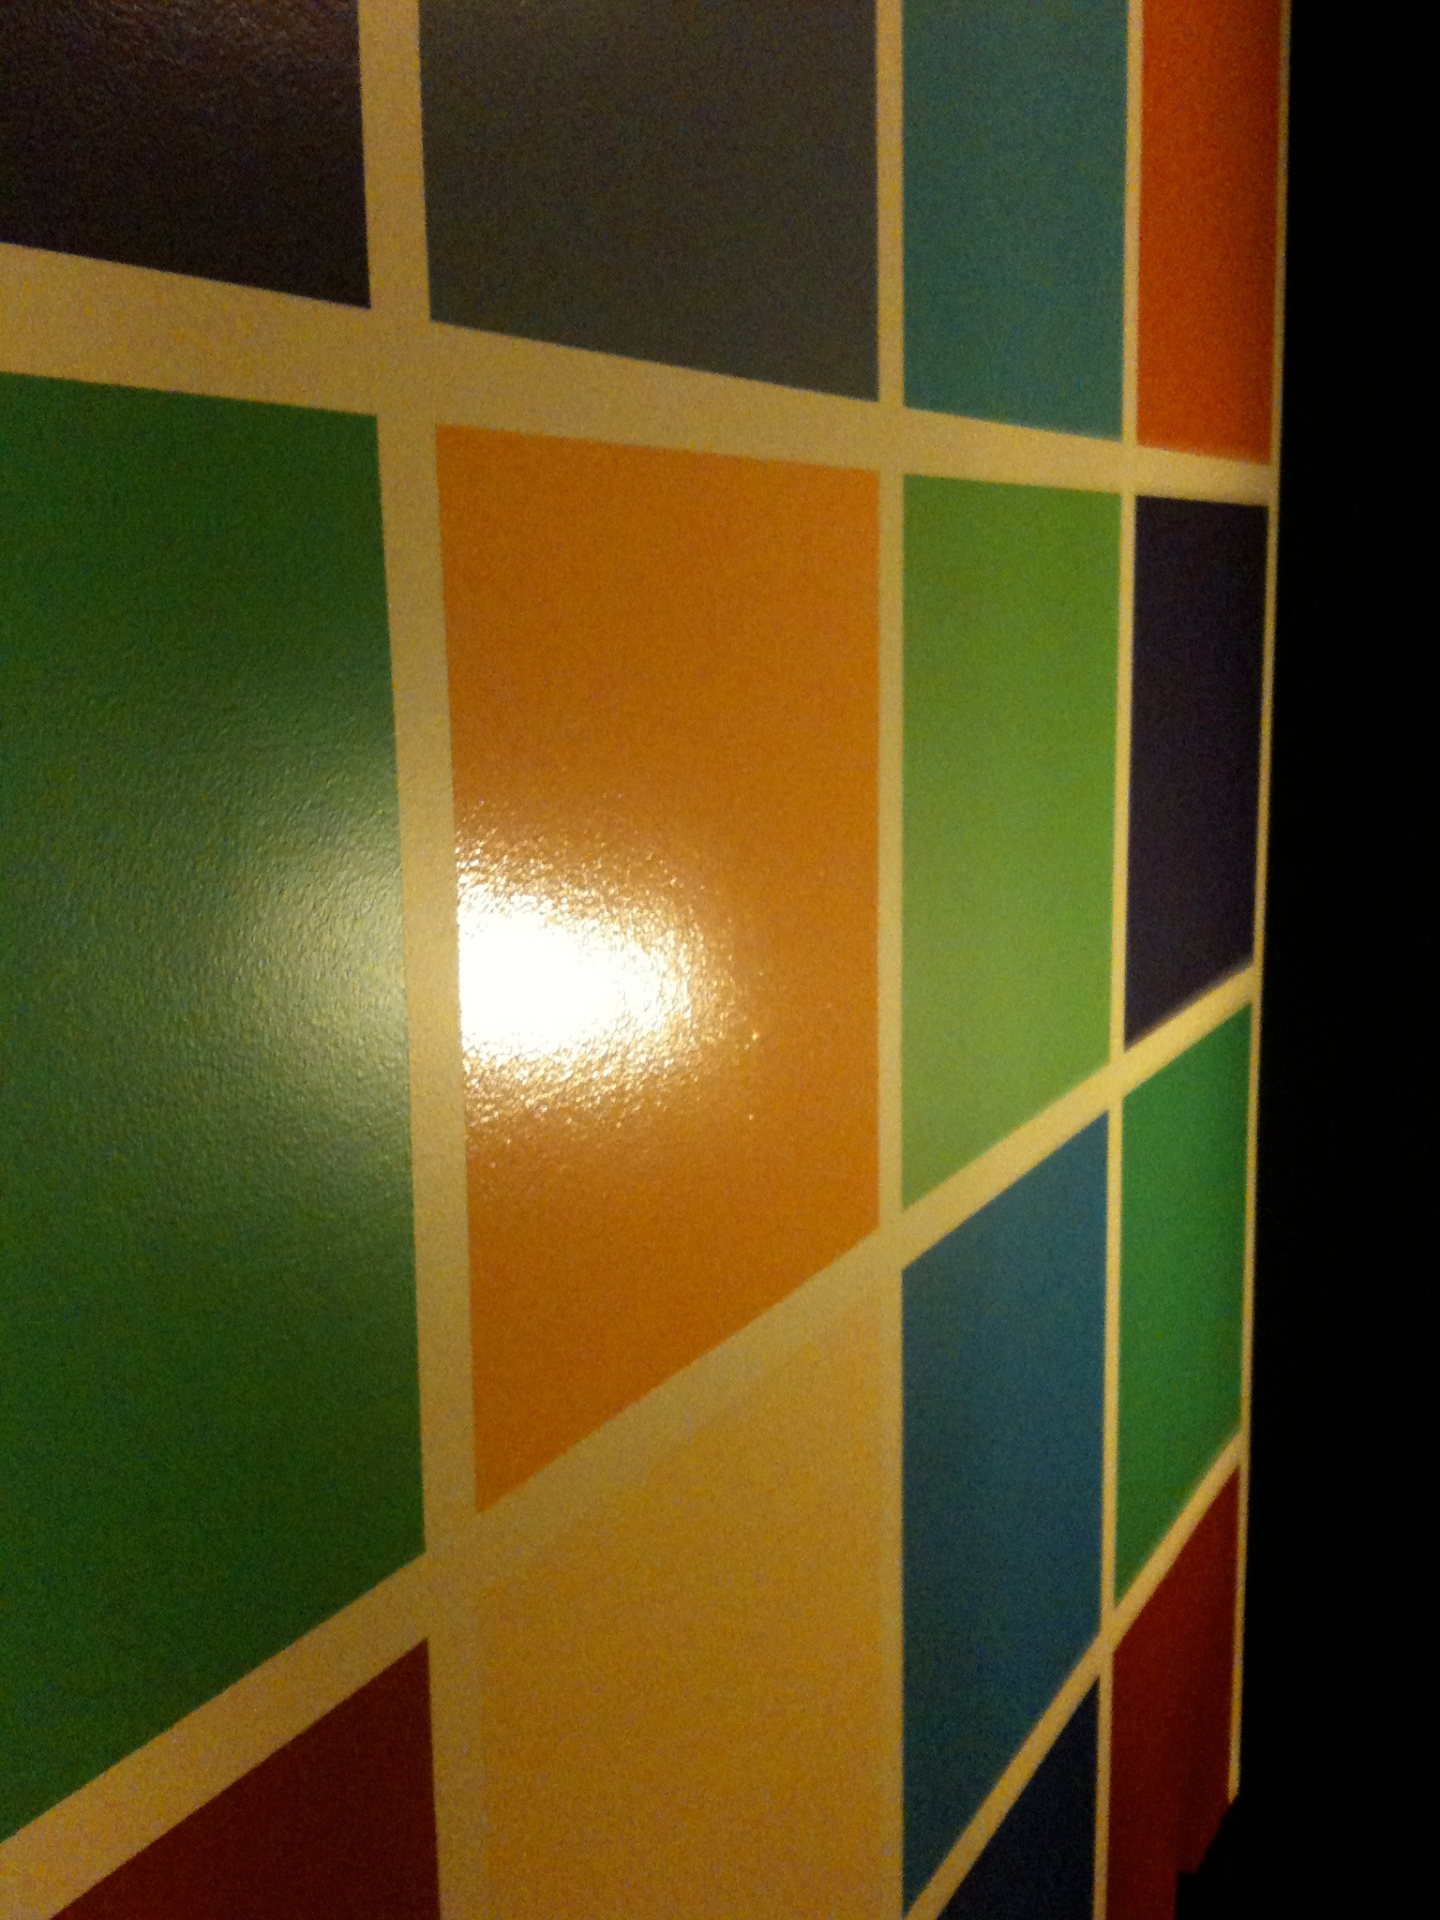 A wall painted with squares